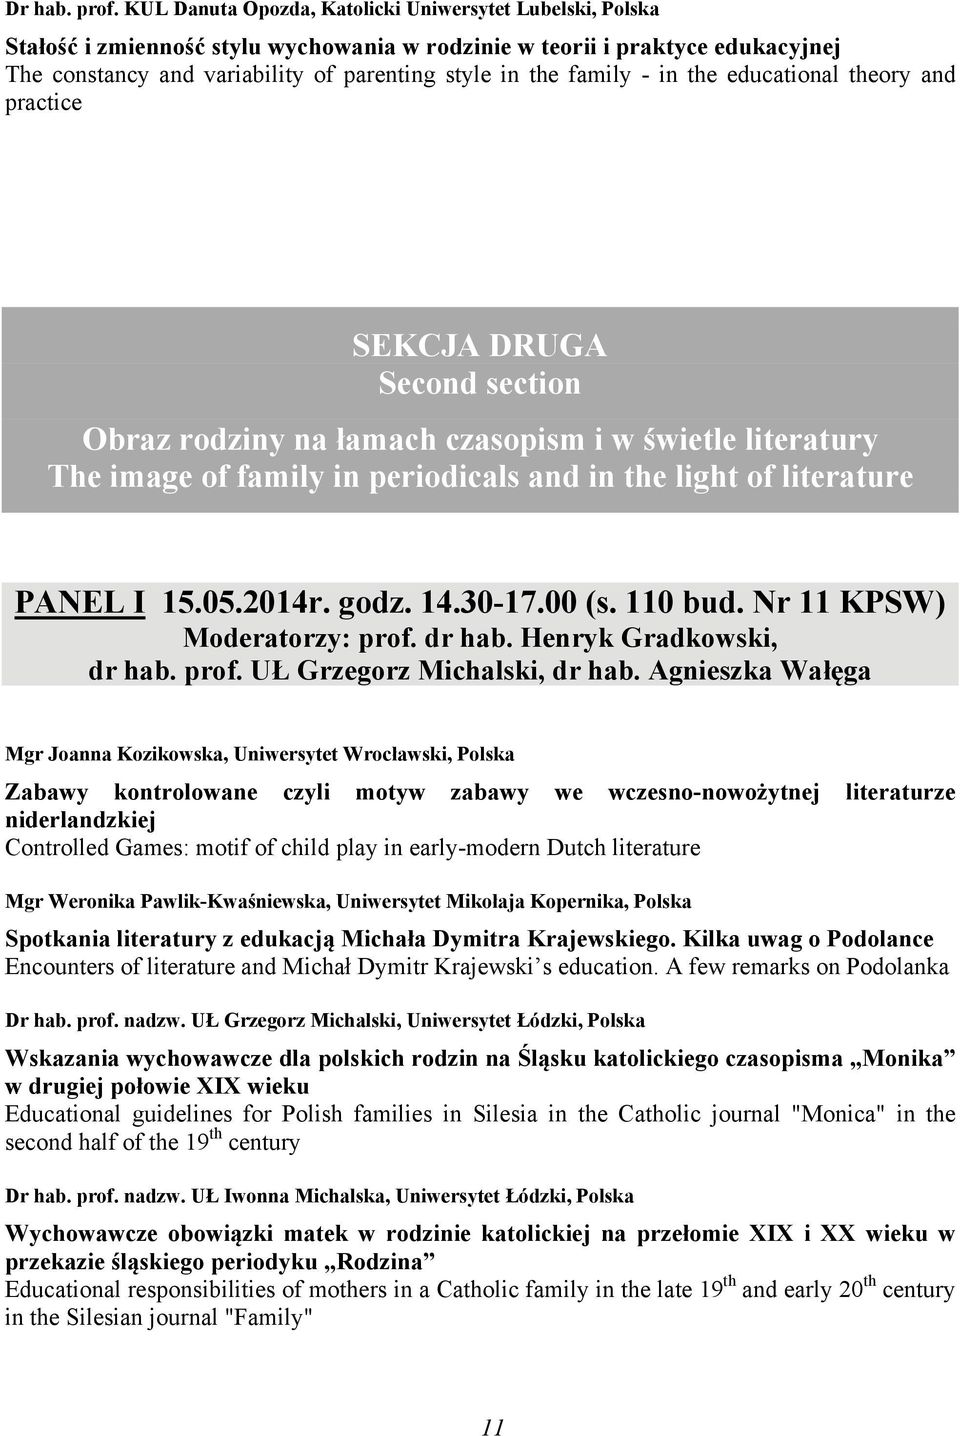 family - in the educational theory and practice SEKCJA DRUGA Second section Obraz rodziny na łamach czasopism i w świetle literatury The image of family in periodicals and in the light of literature